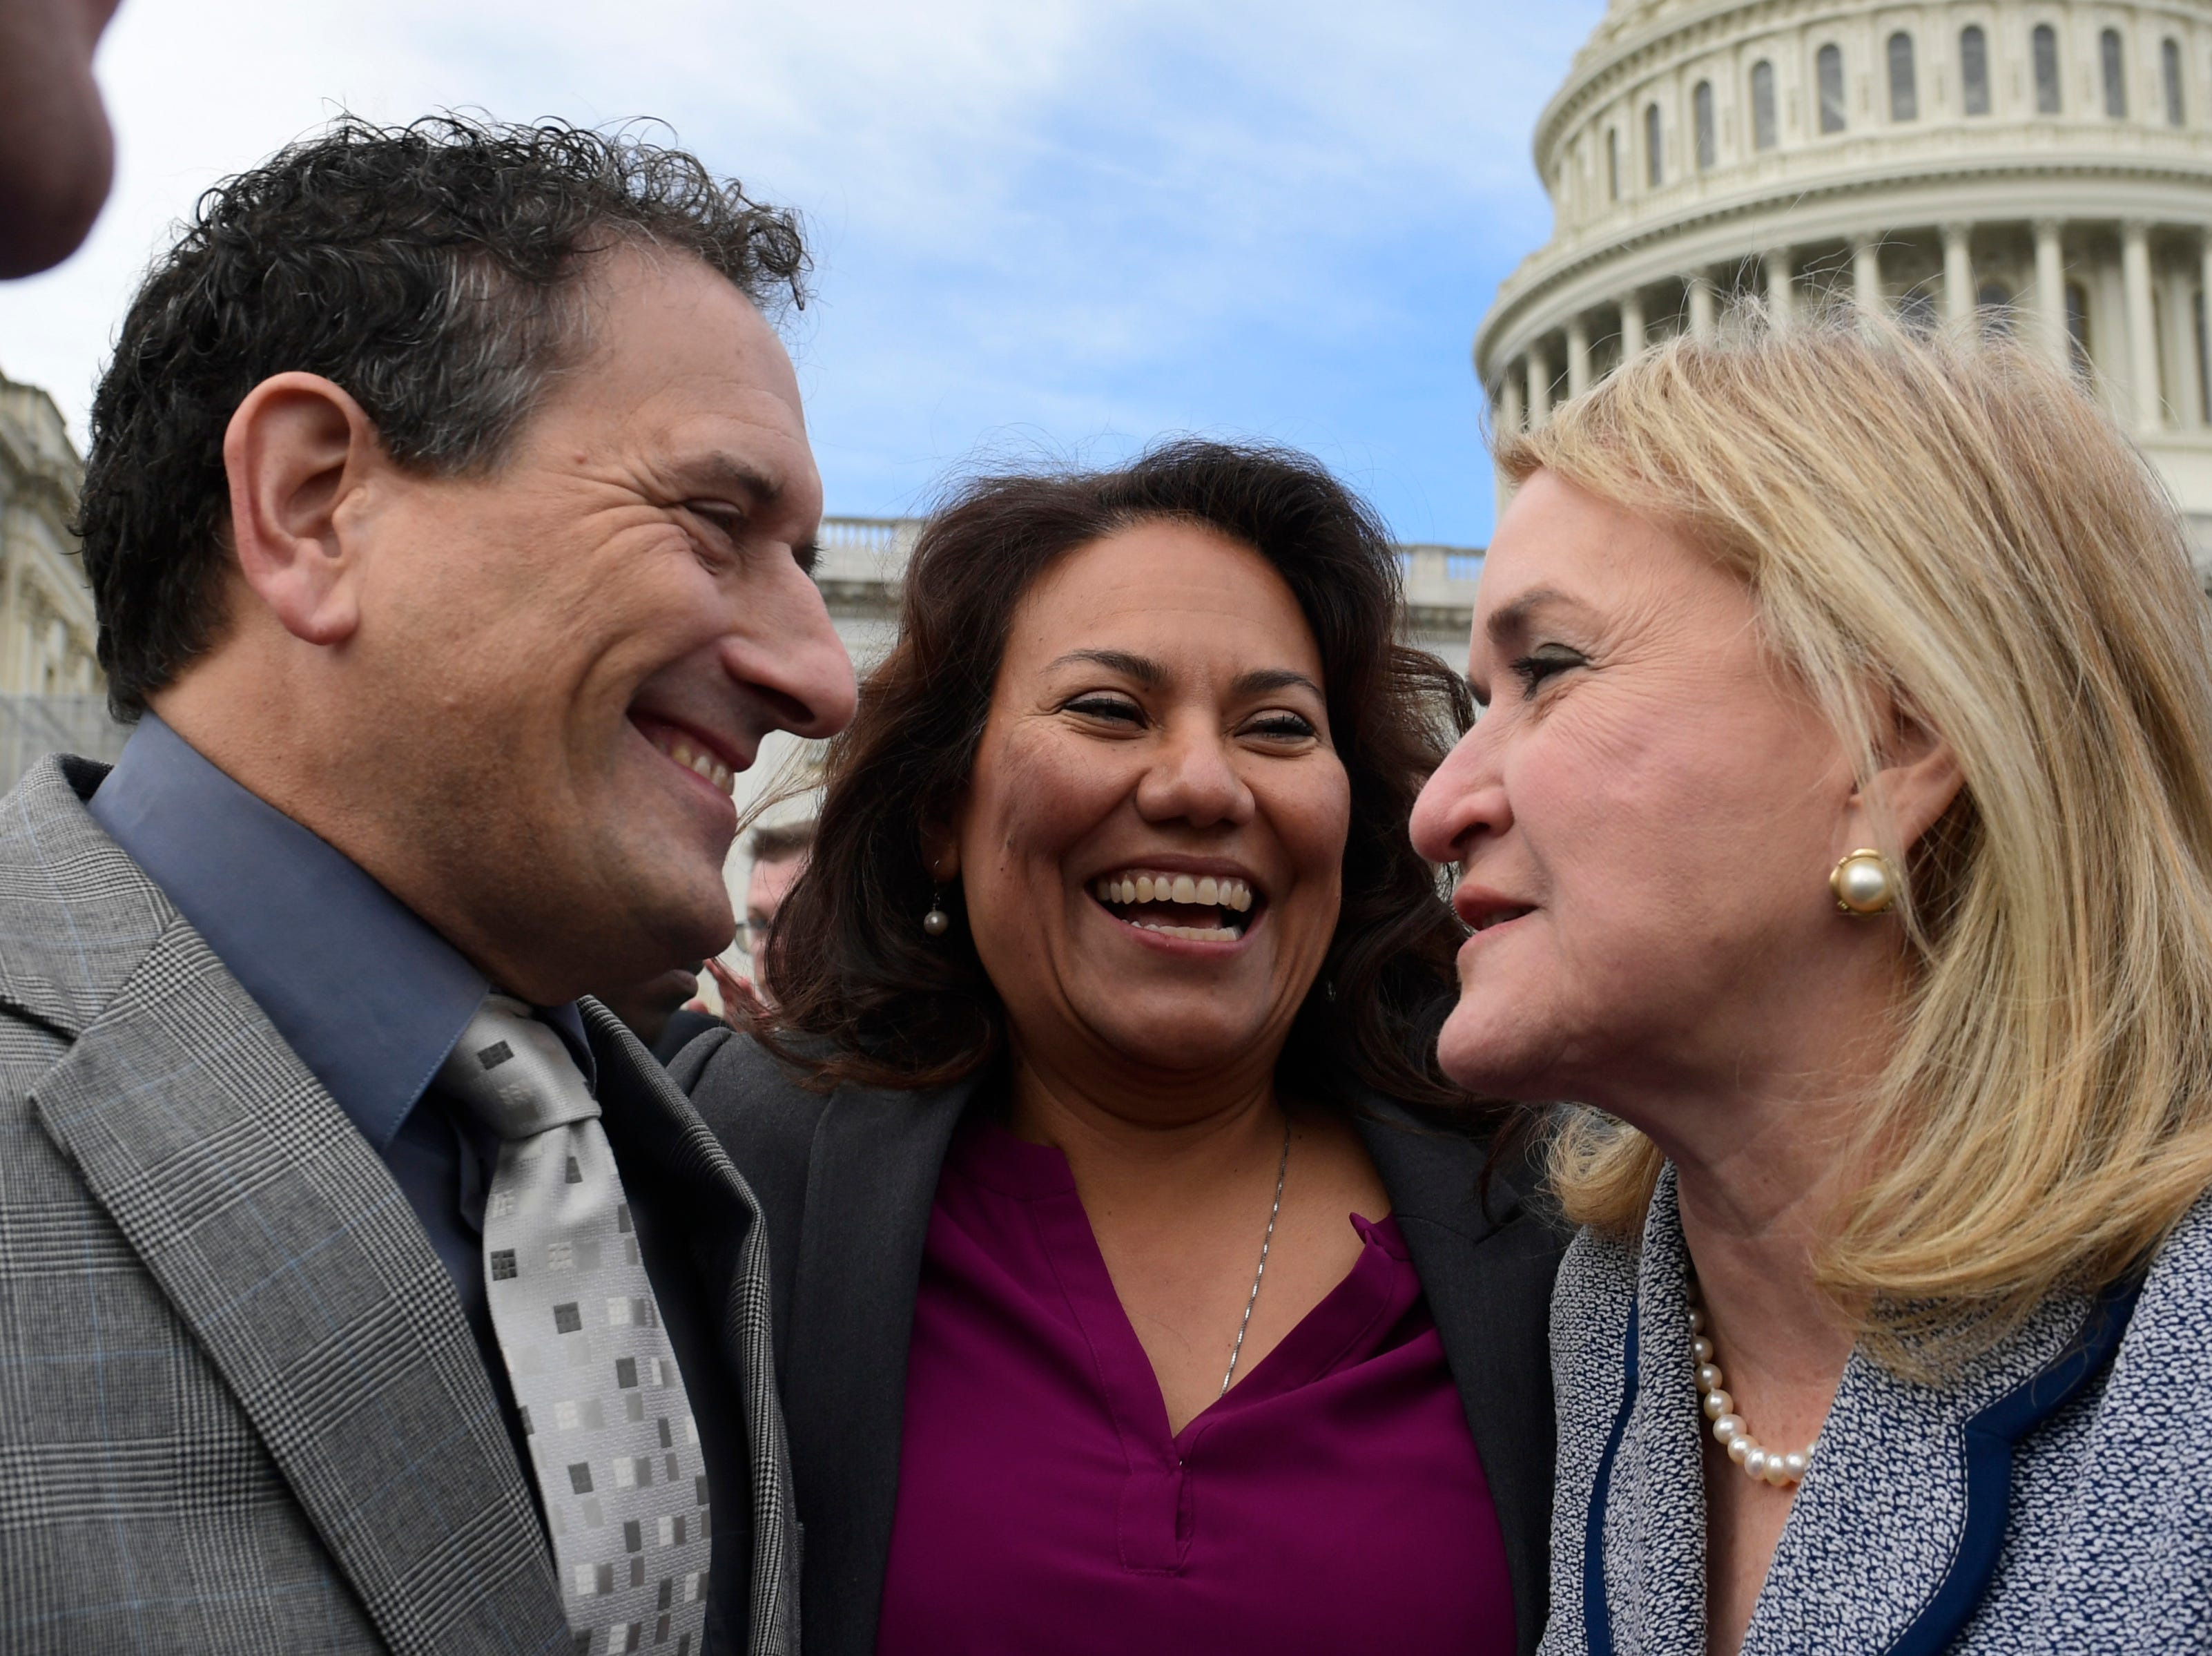 U.S. Rep.-elect Andy Levin, D-Mich., left, U.S. Rep.-elect Veronica Escobar, D-El Paso, center, and U.S. Rep.-elect Sylvia Garcia, D-Texas, talk after a photo opportunity for the freshman class Wednesday, Nov. 14, 2018, on Capitol Hill in Washington.